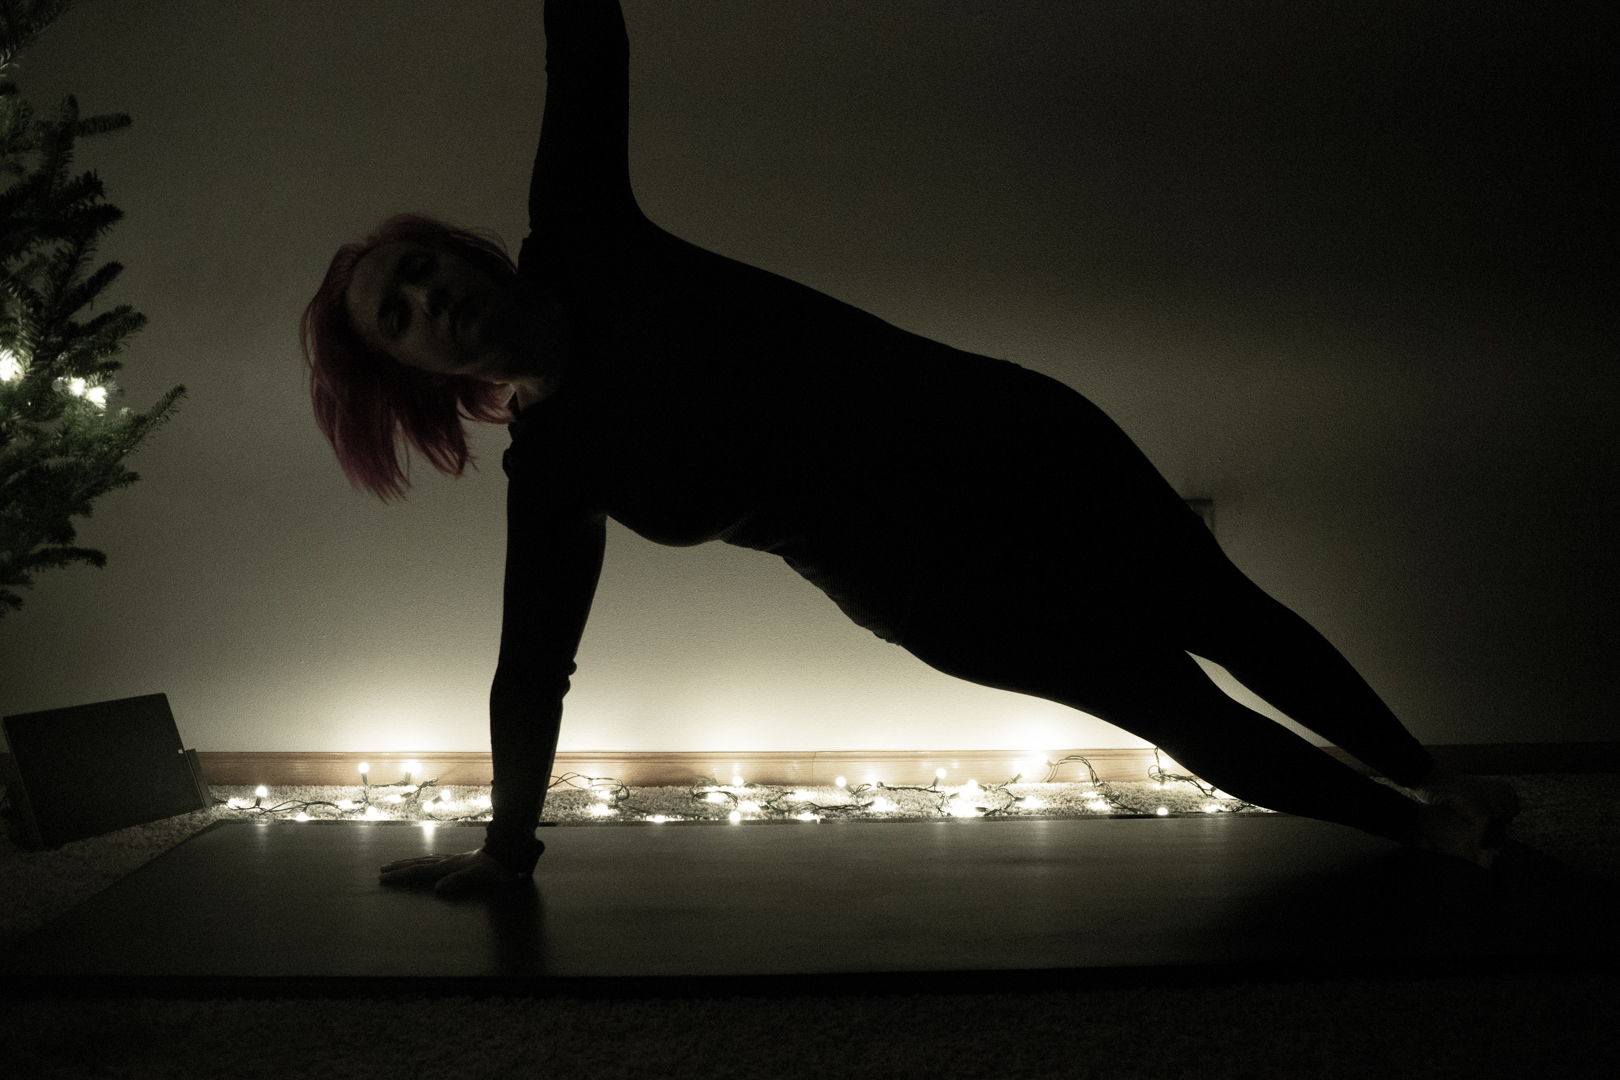 Side plank and I are acquaintances that are undecided about becoming friends.